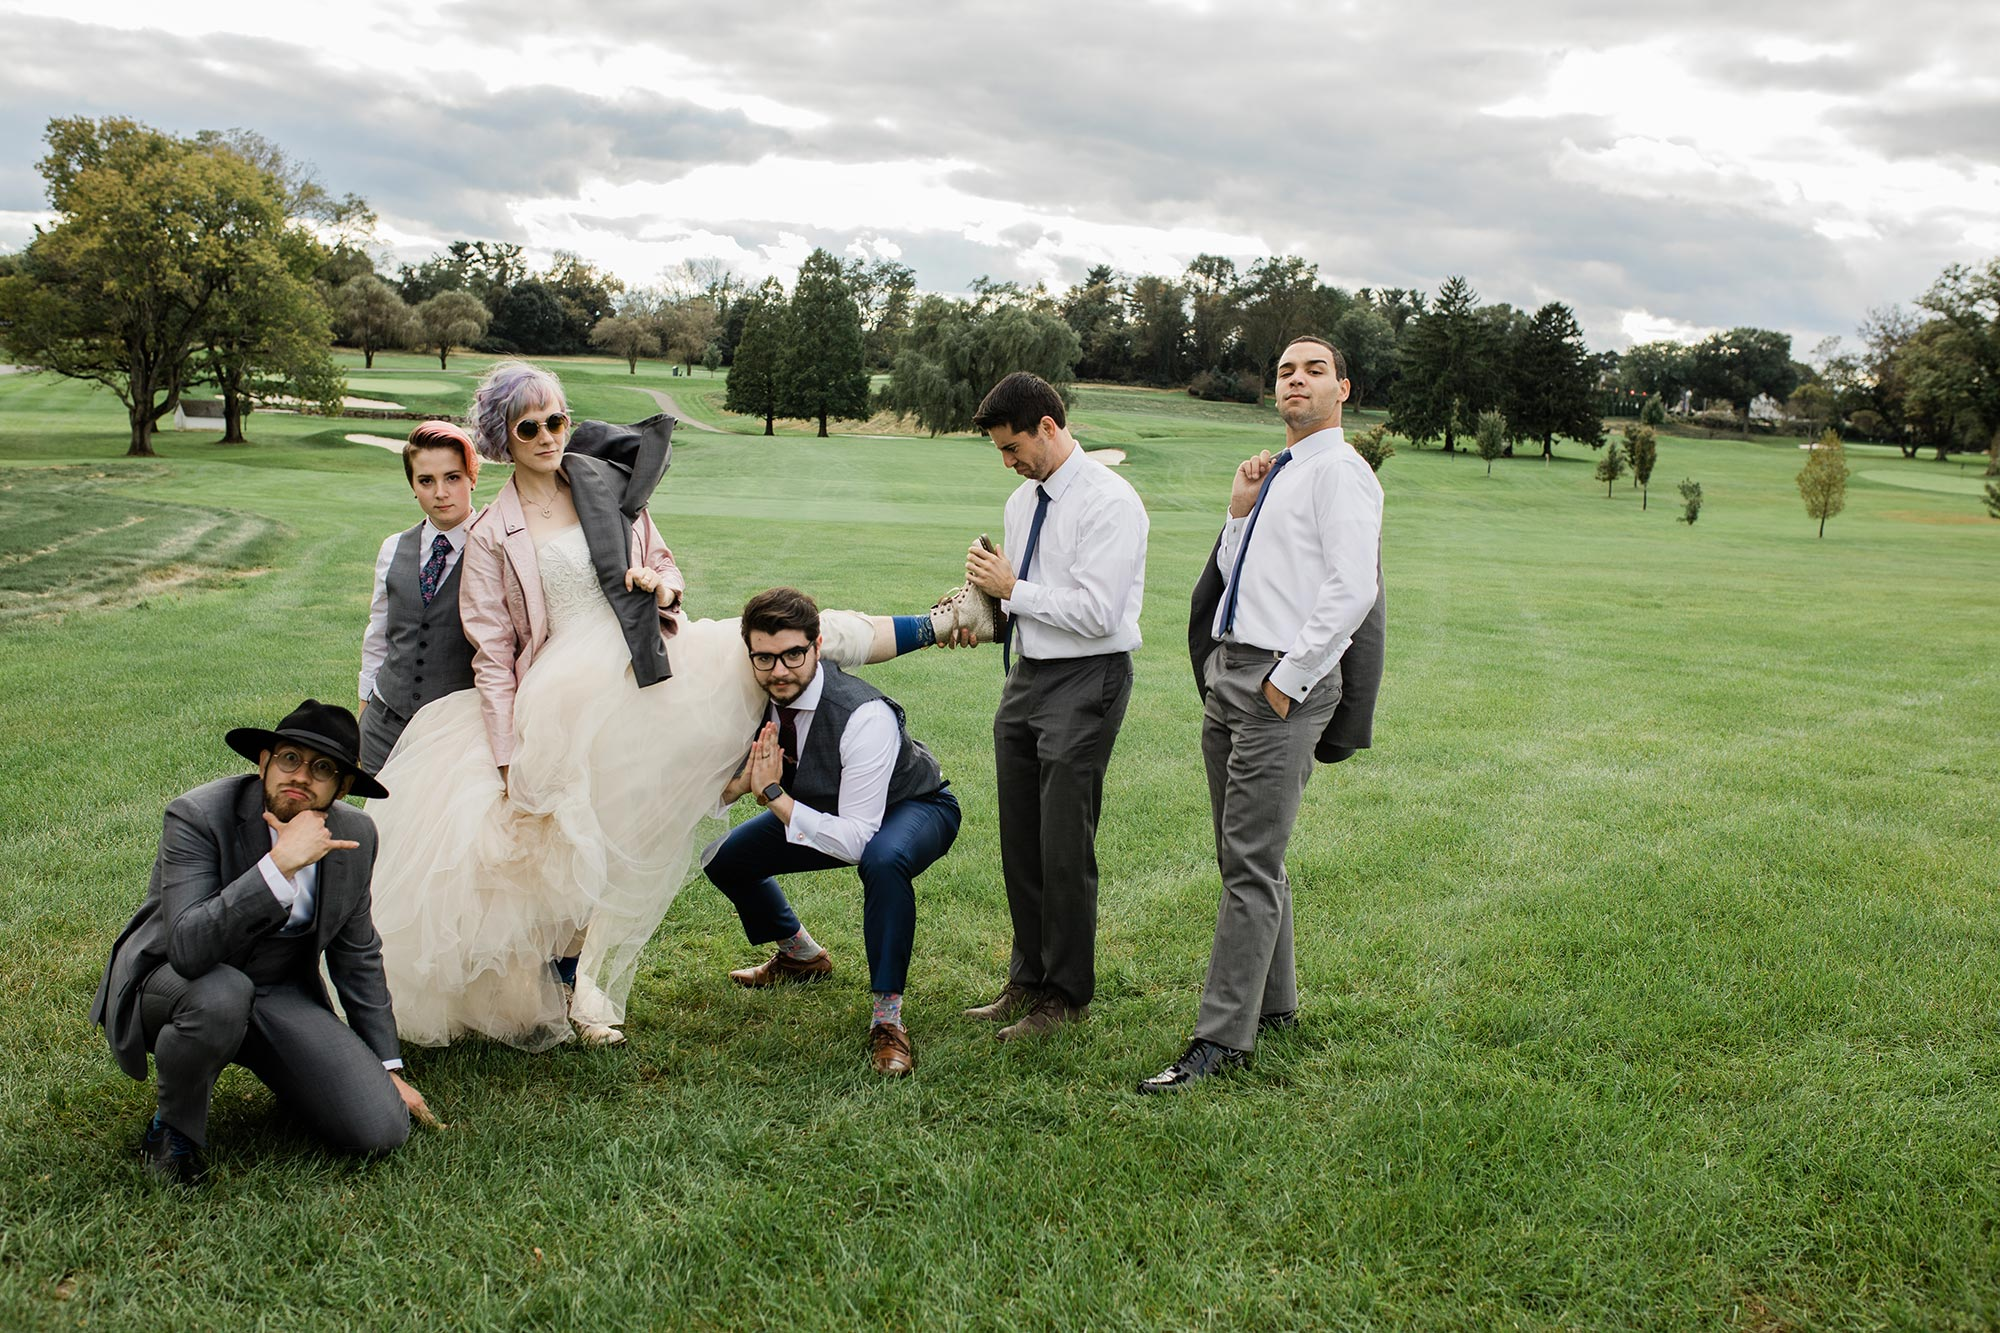 Chic Queer Wedding in West Chester Pennsylvania showing couple with wedding party Judson Rappaport Photography